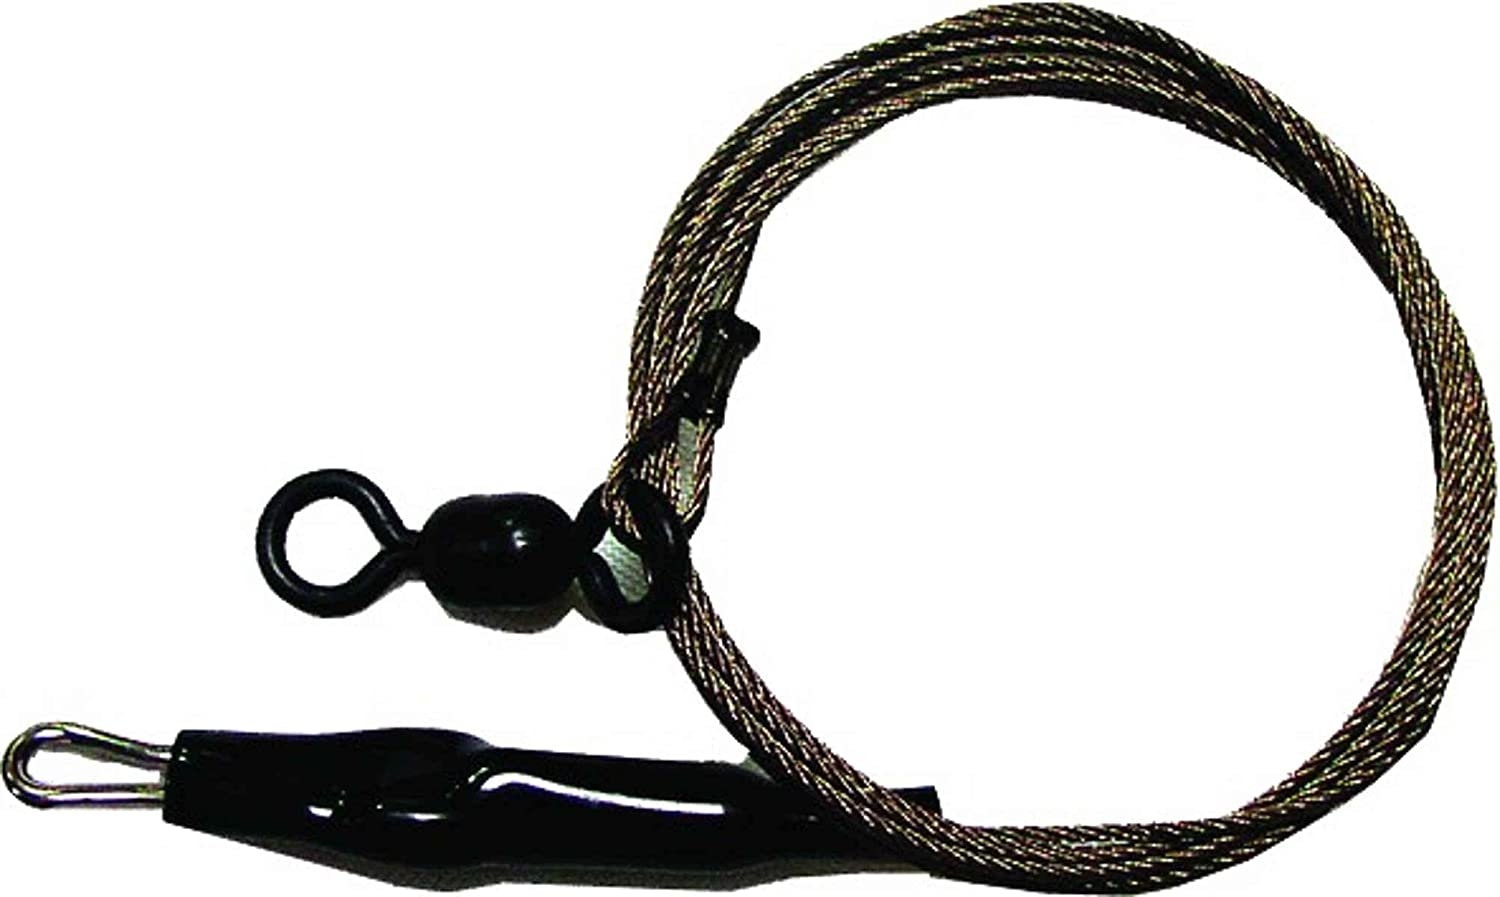 Special price for a limited time Braid 69585 Harness Max 43% OFF Trolling